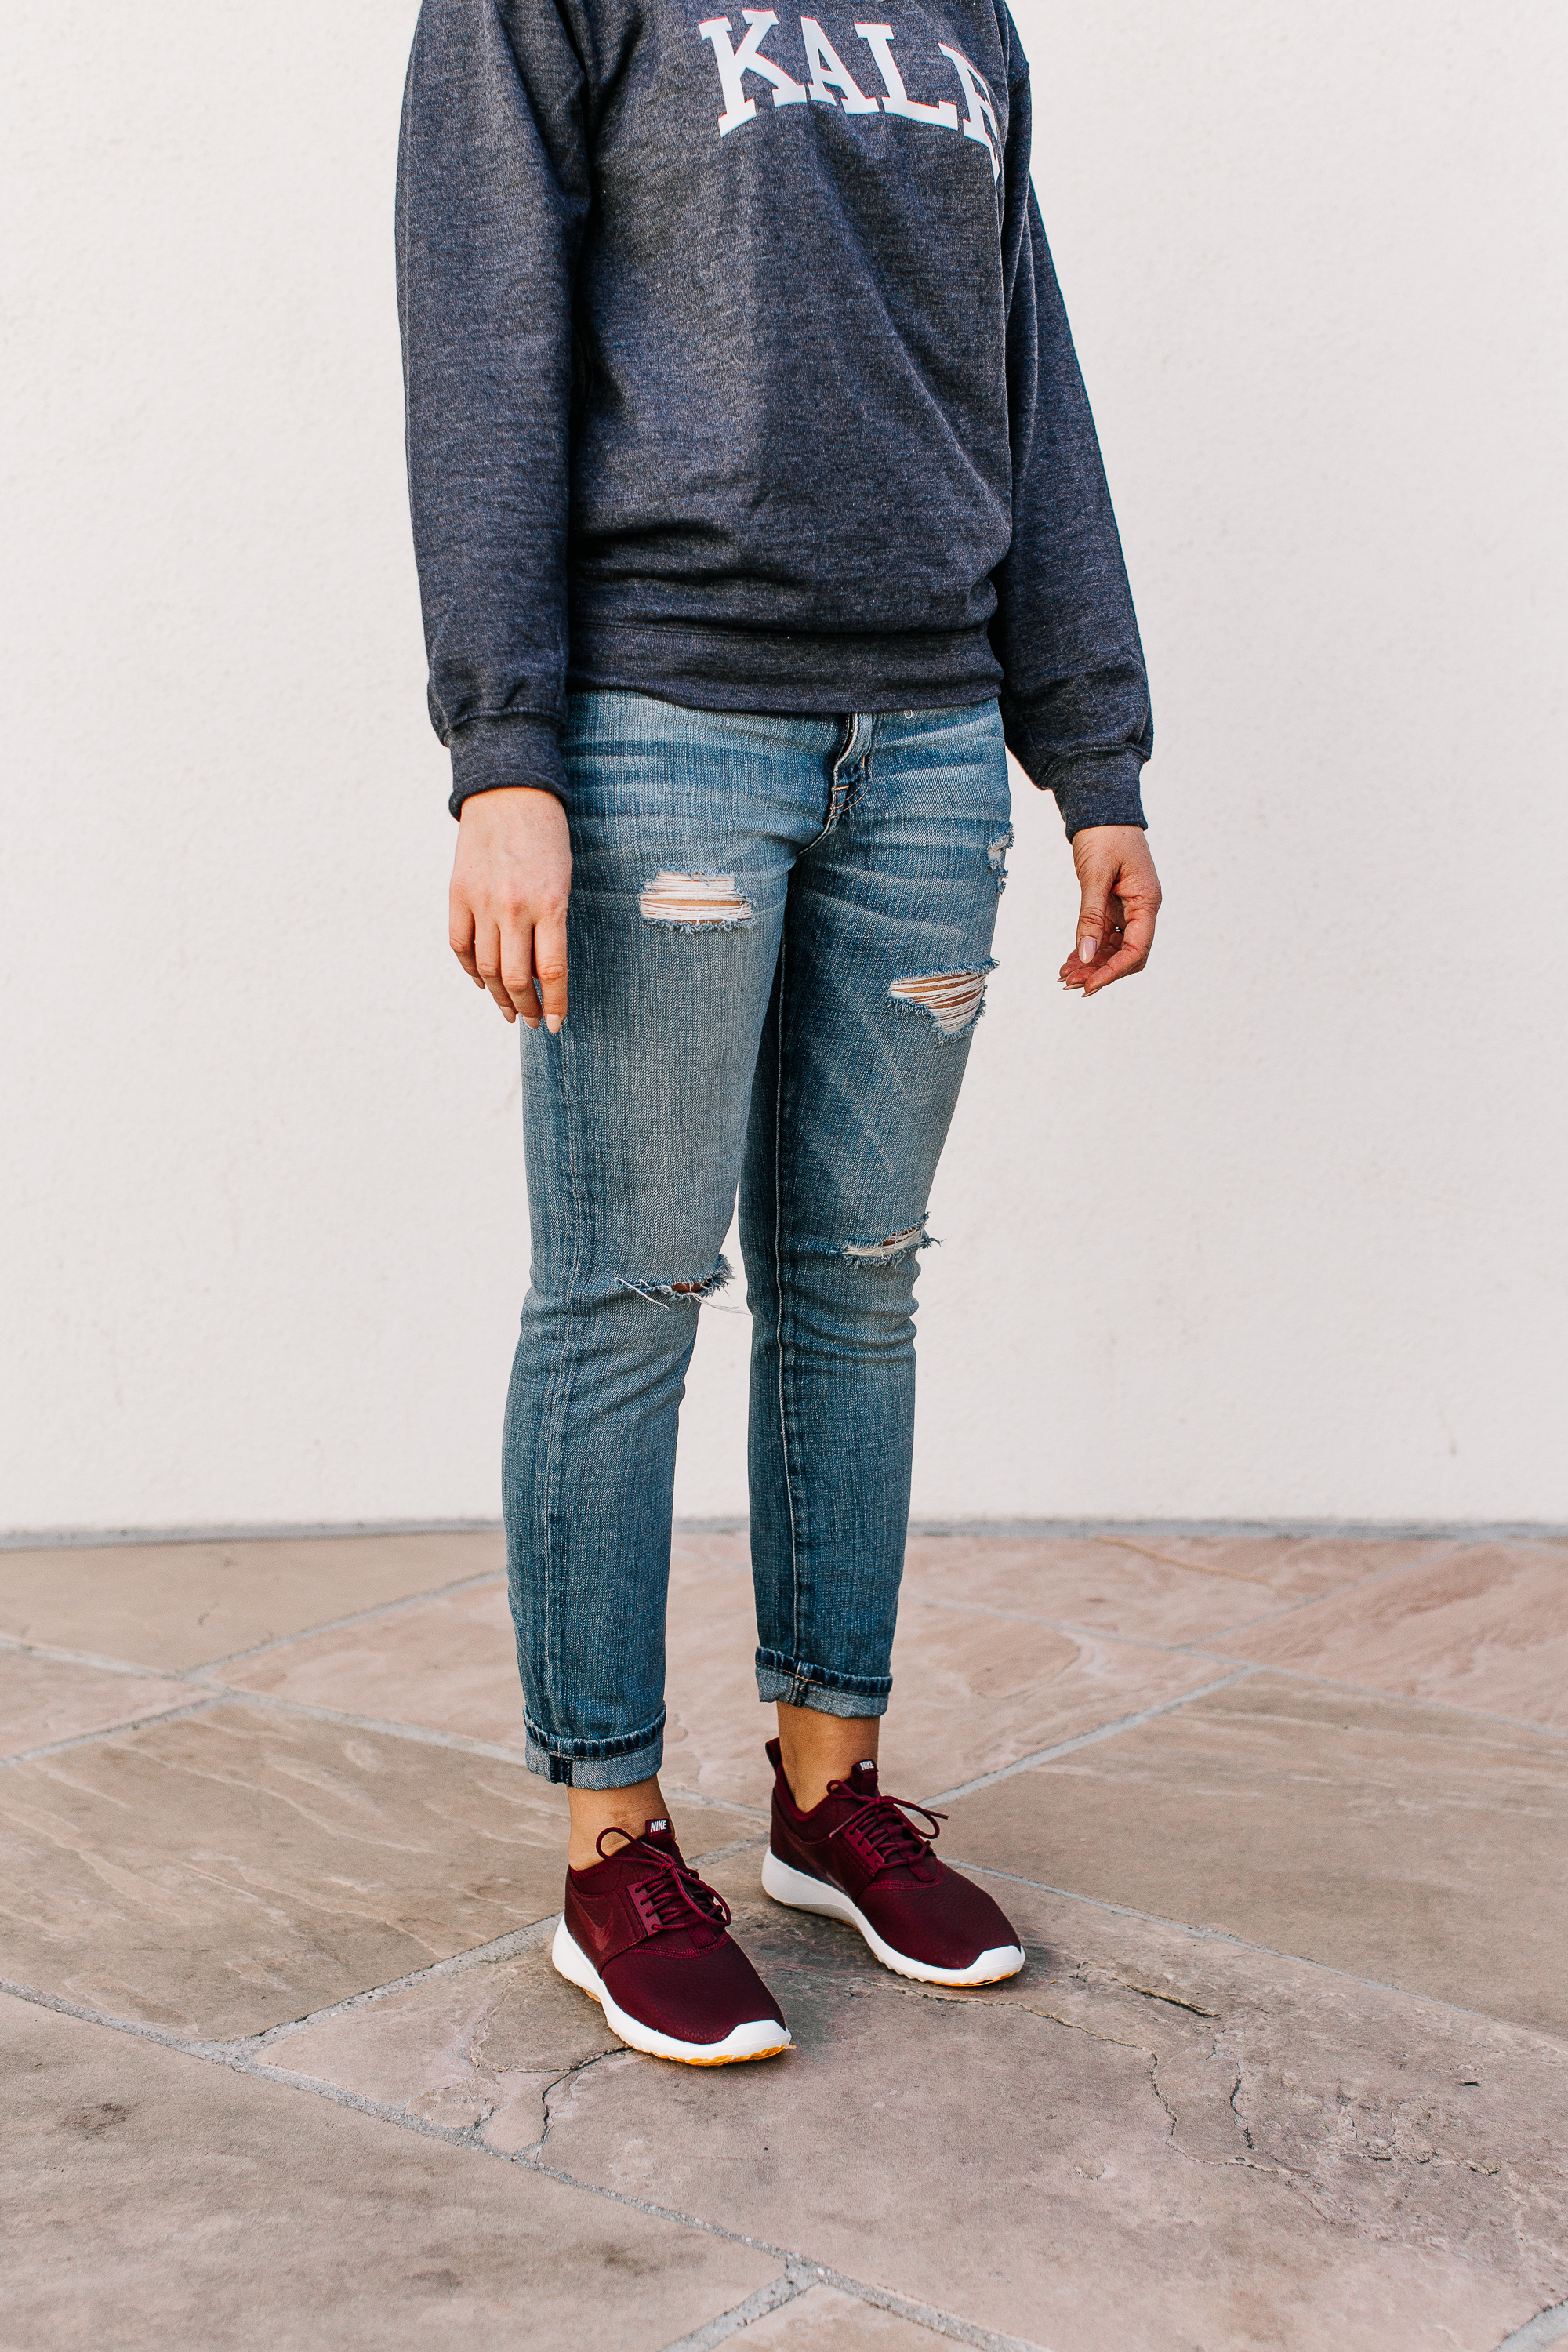 sweatshirt-boyfriend-jeans-and-nikes